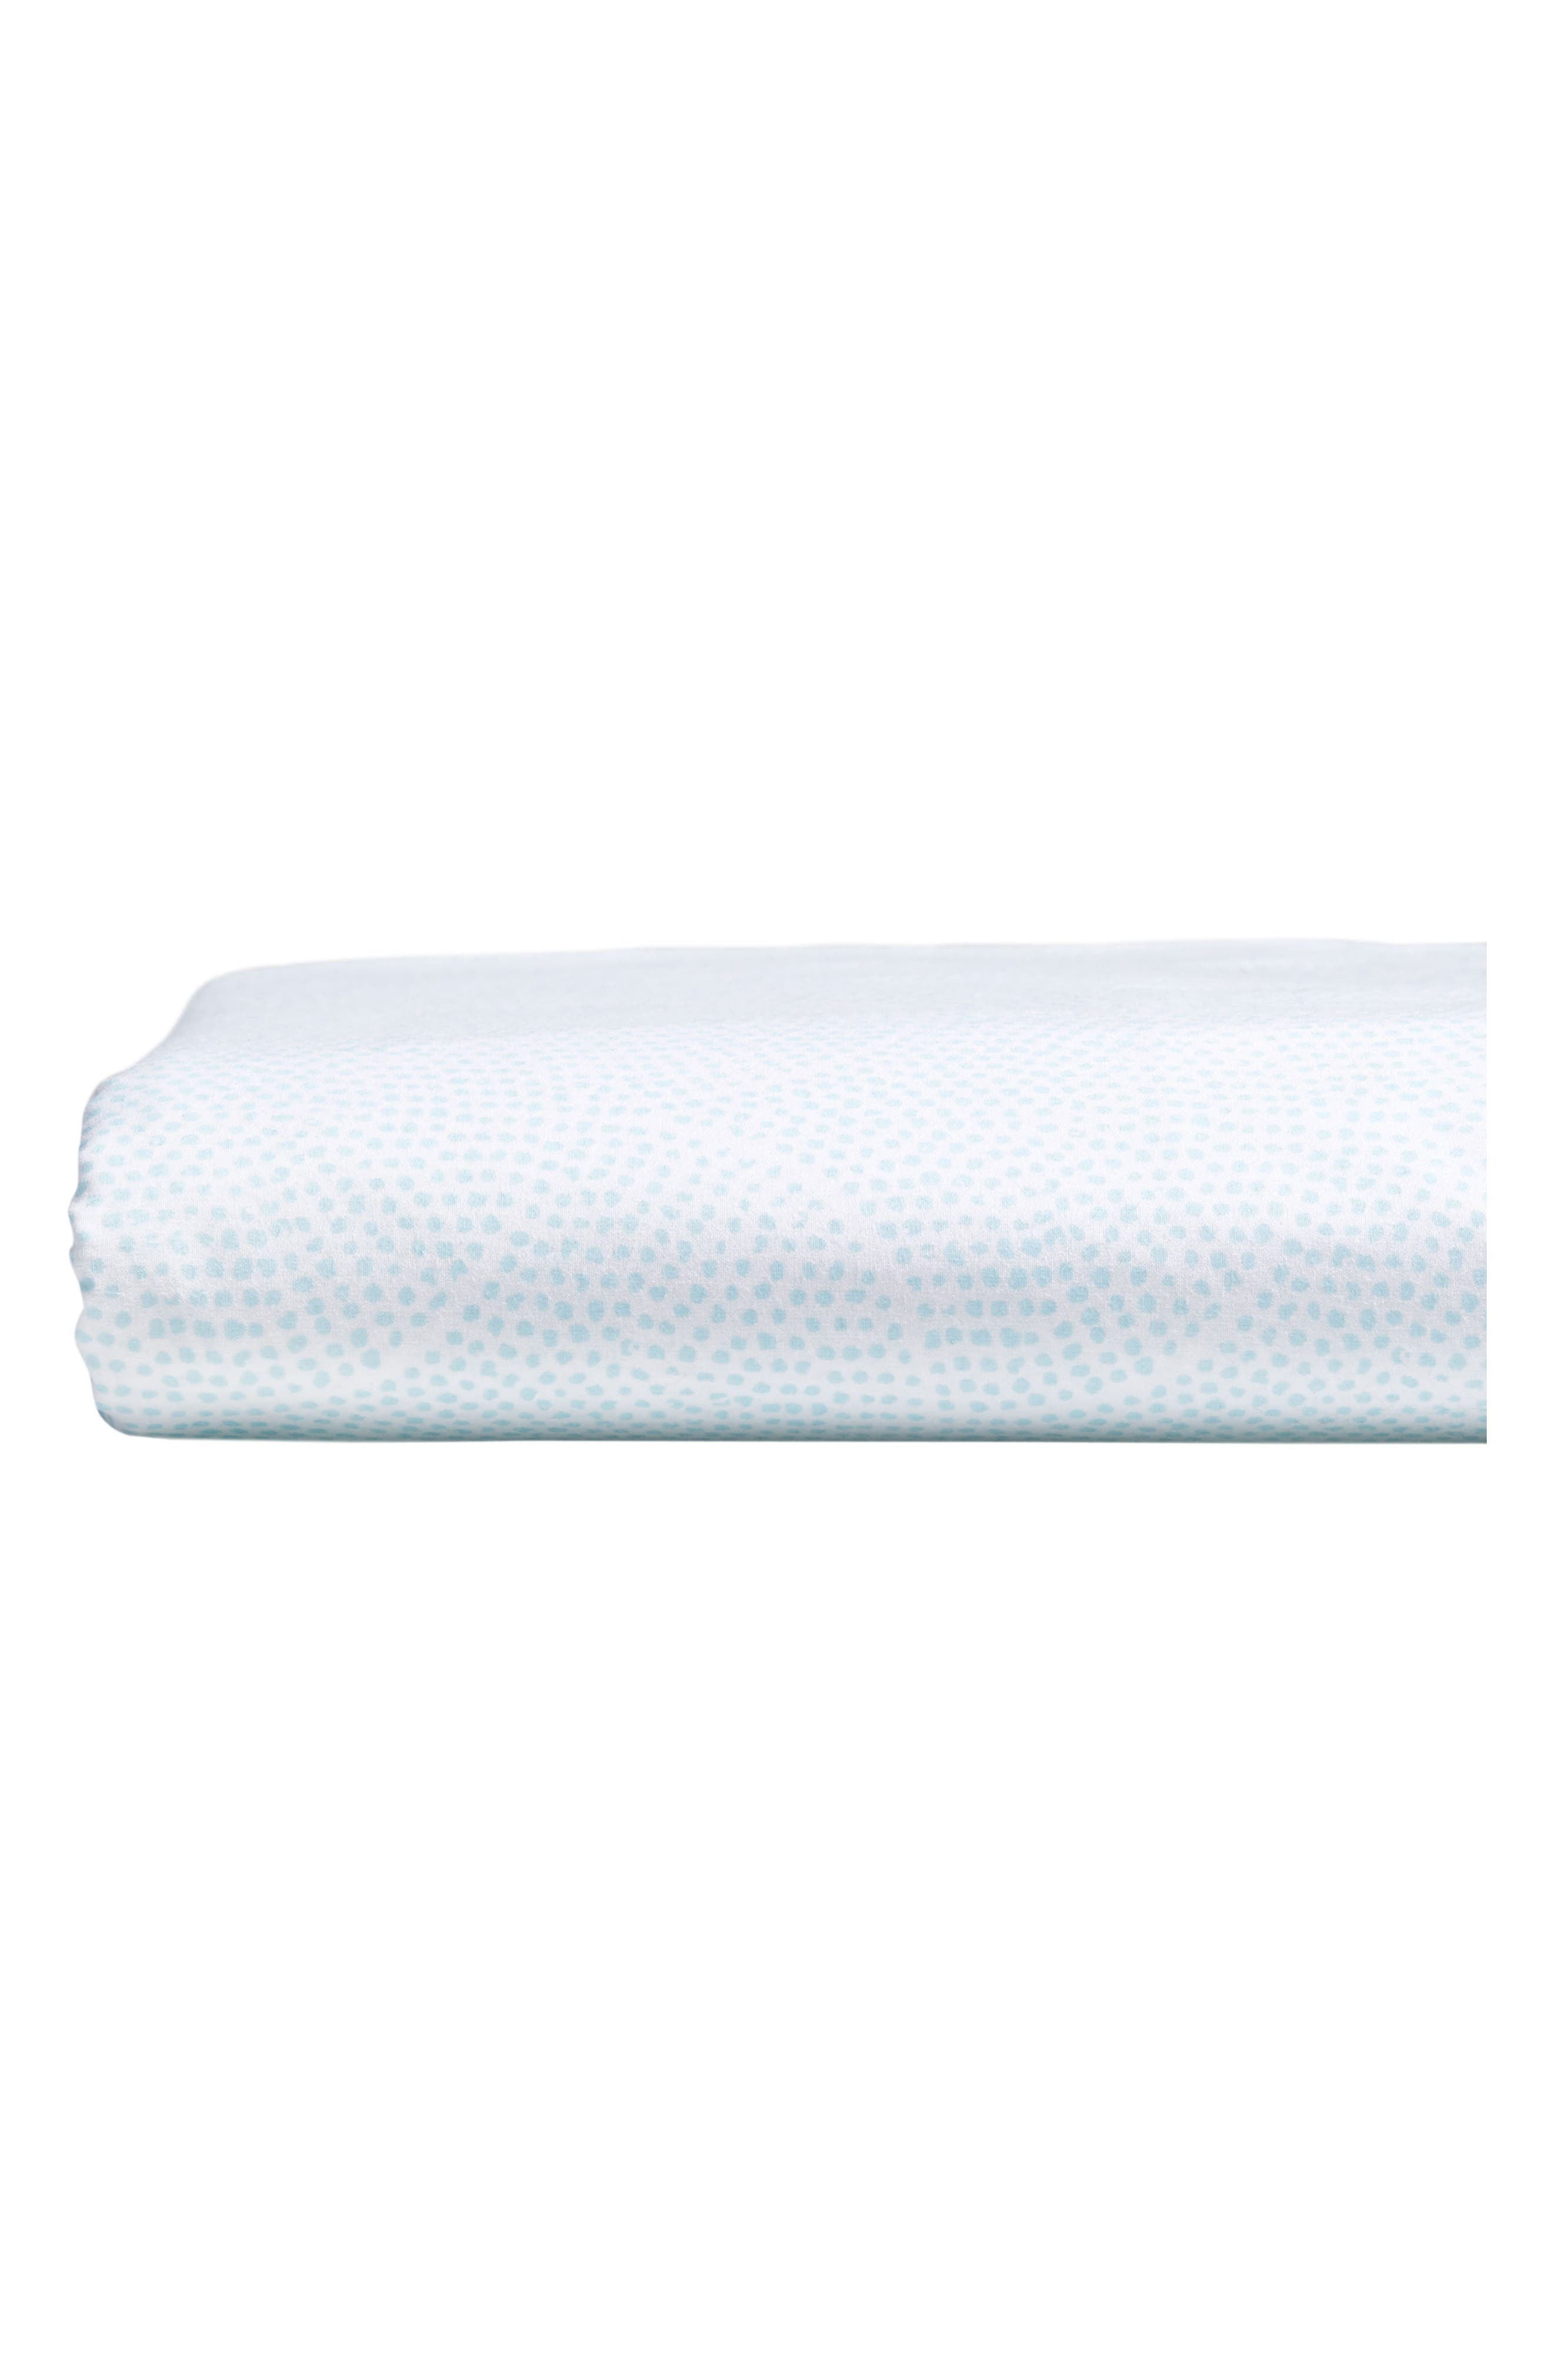 Vatula 400 Thread Count Fitted Sheet,                             Main thumbnail 1, color,                             100